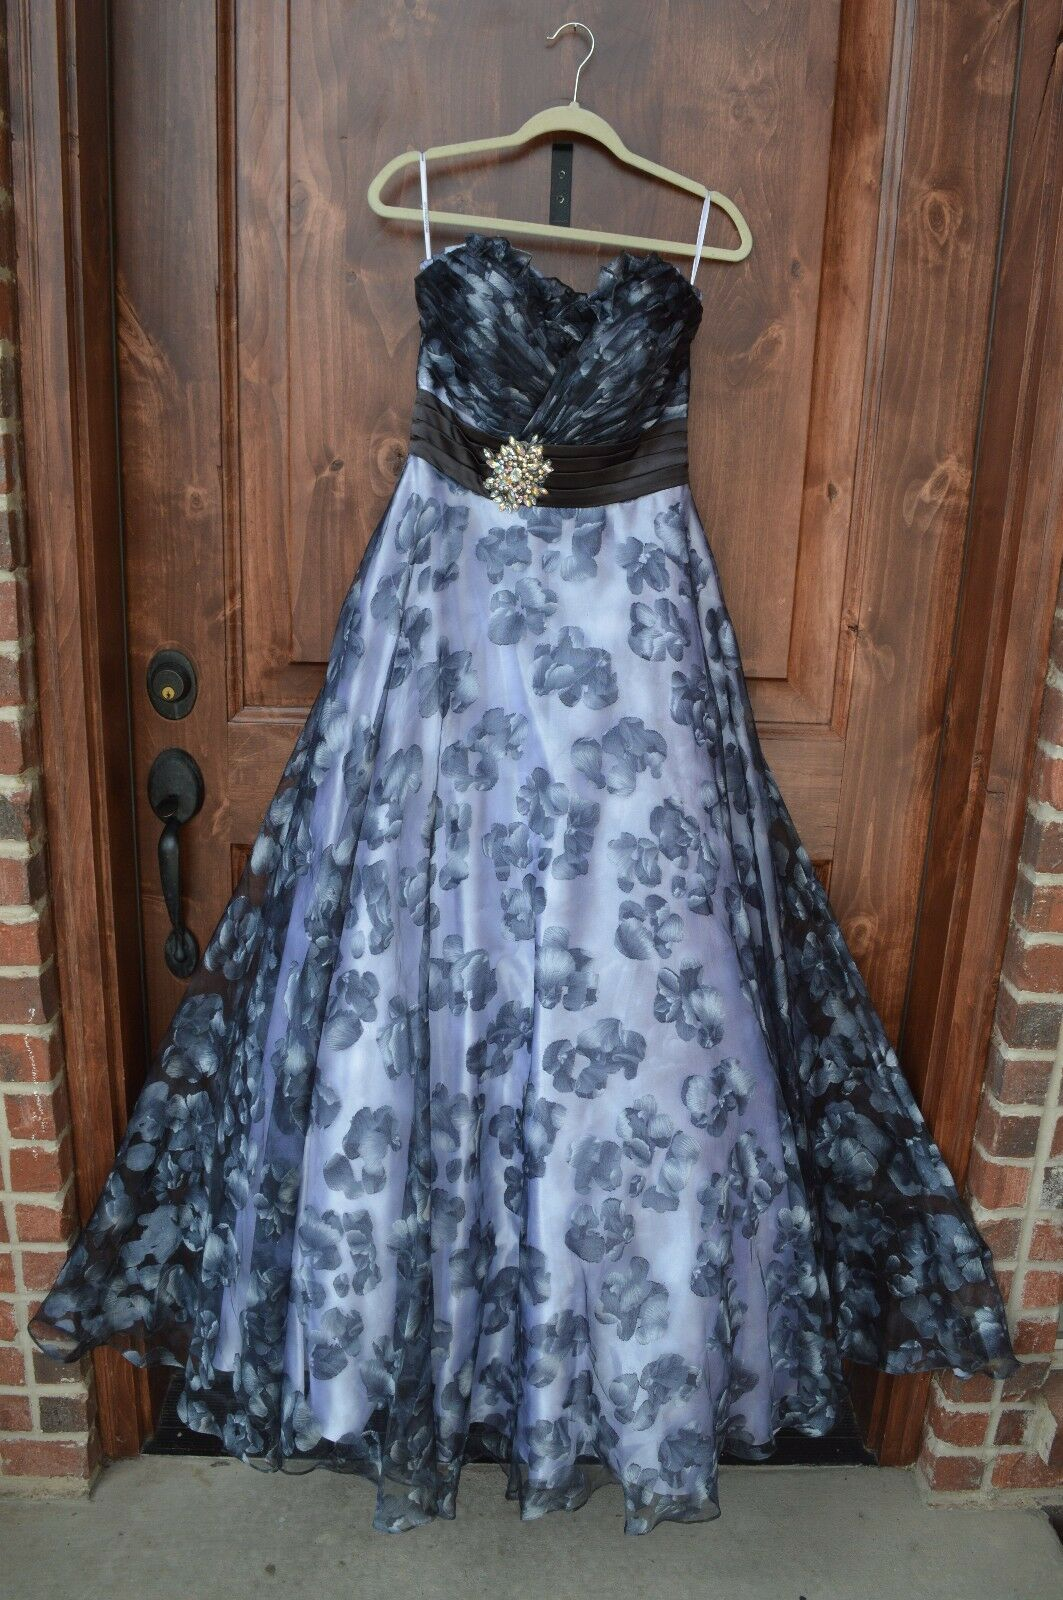 Navy floral a-line ball gown prom dress size 8. sweetheart neckline